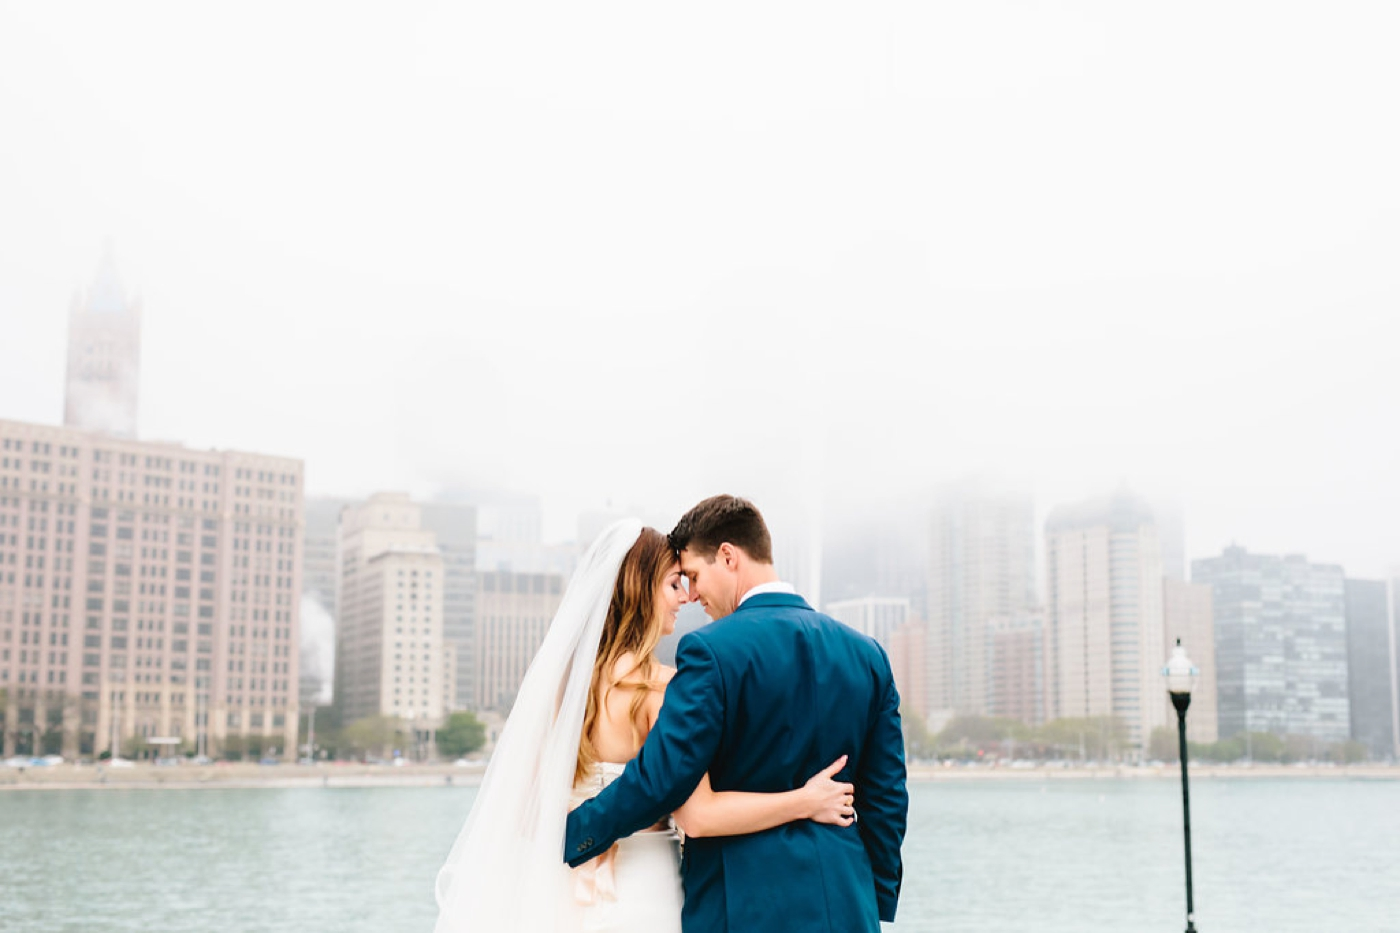 chicago-fine-art-wedding-photography-mclaughlin54